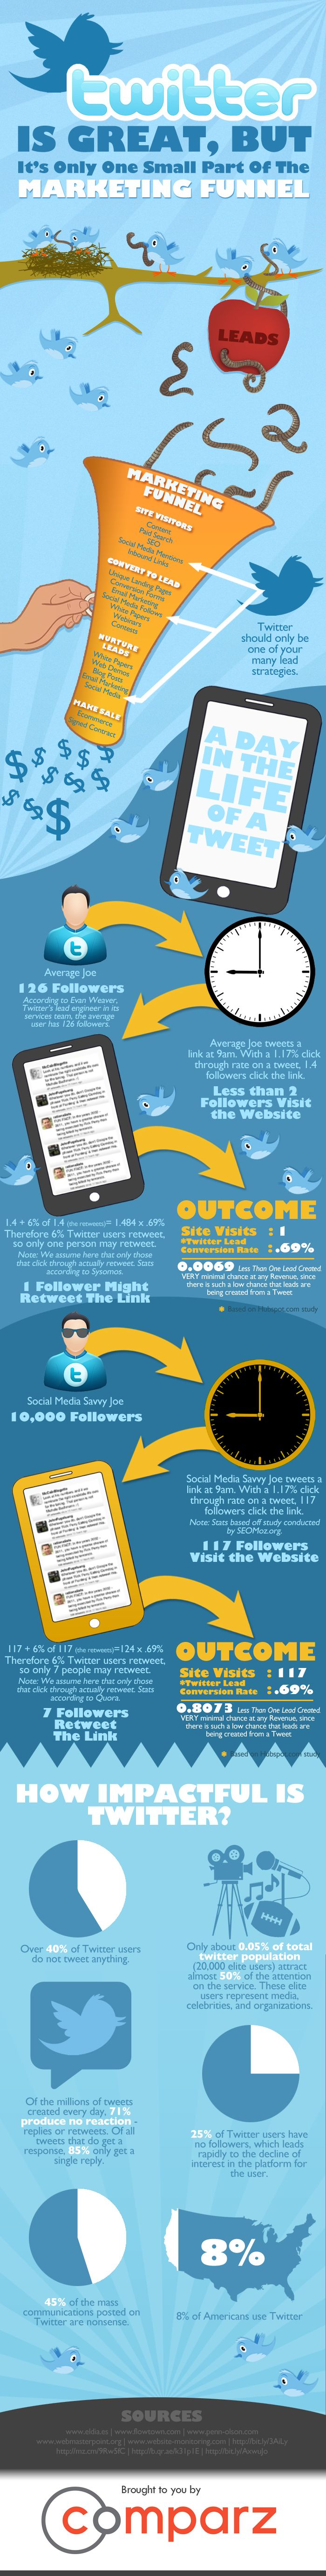 Twitter Should Only be a Small Piece of Your Marketing Efforts